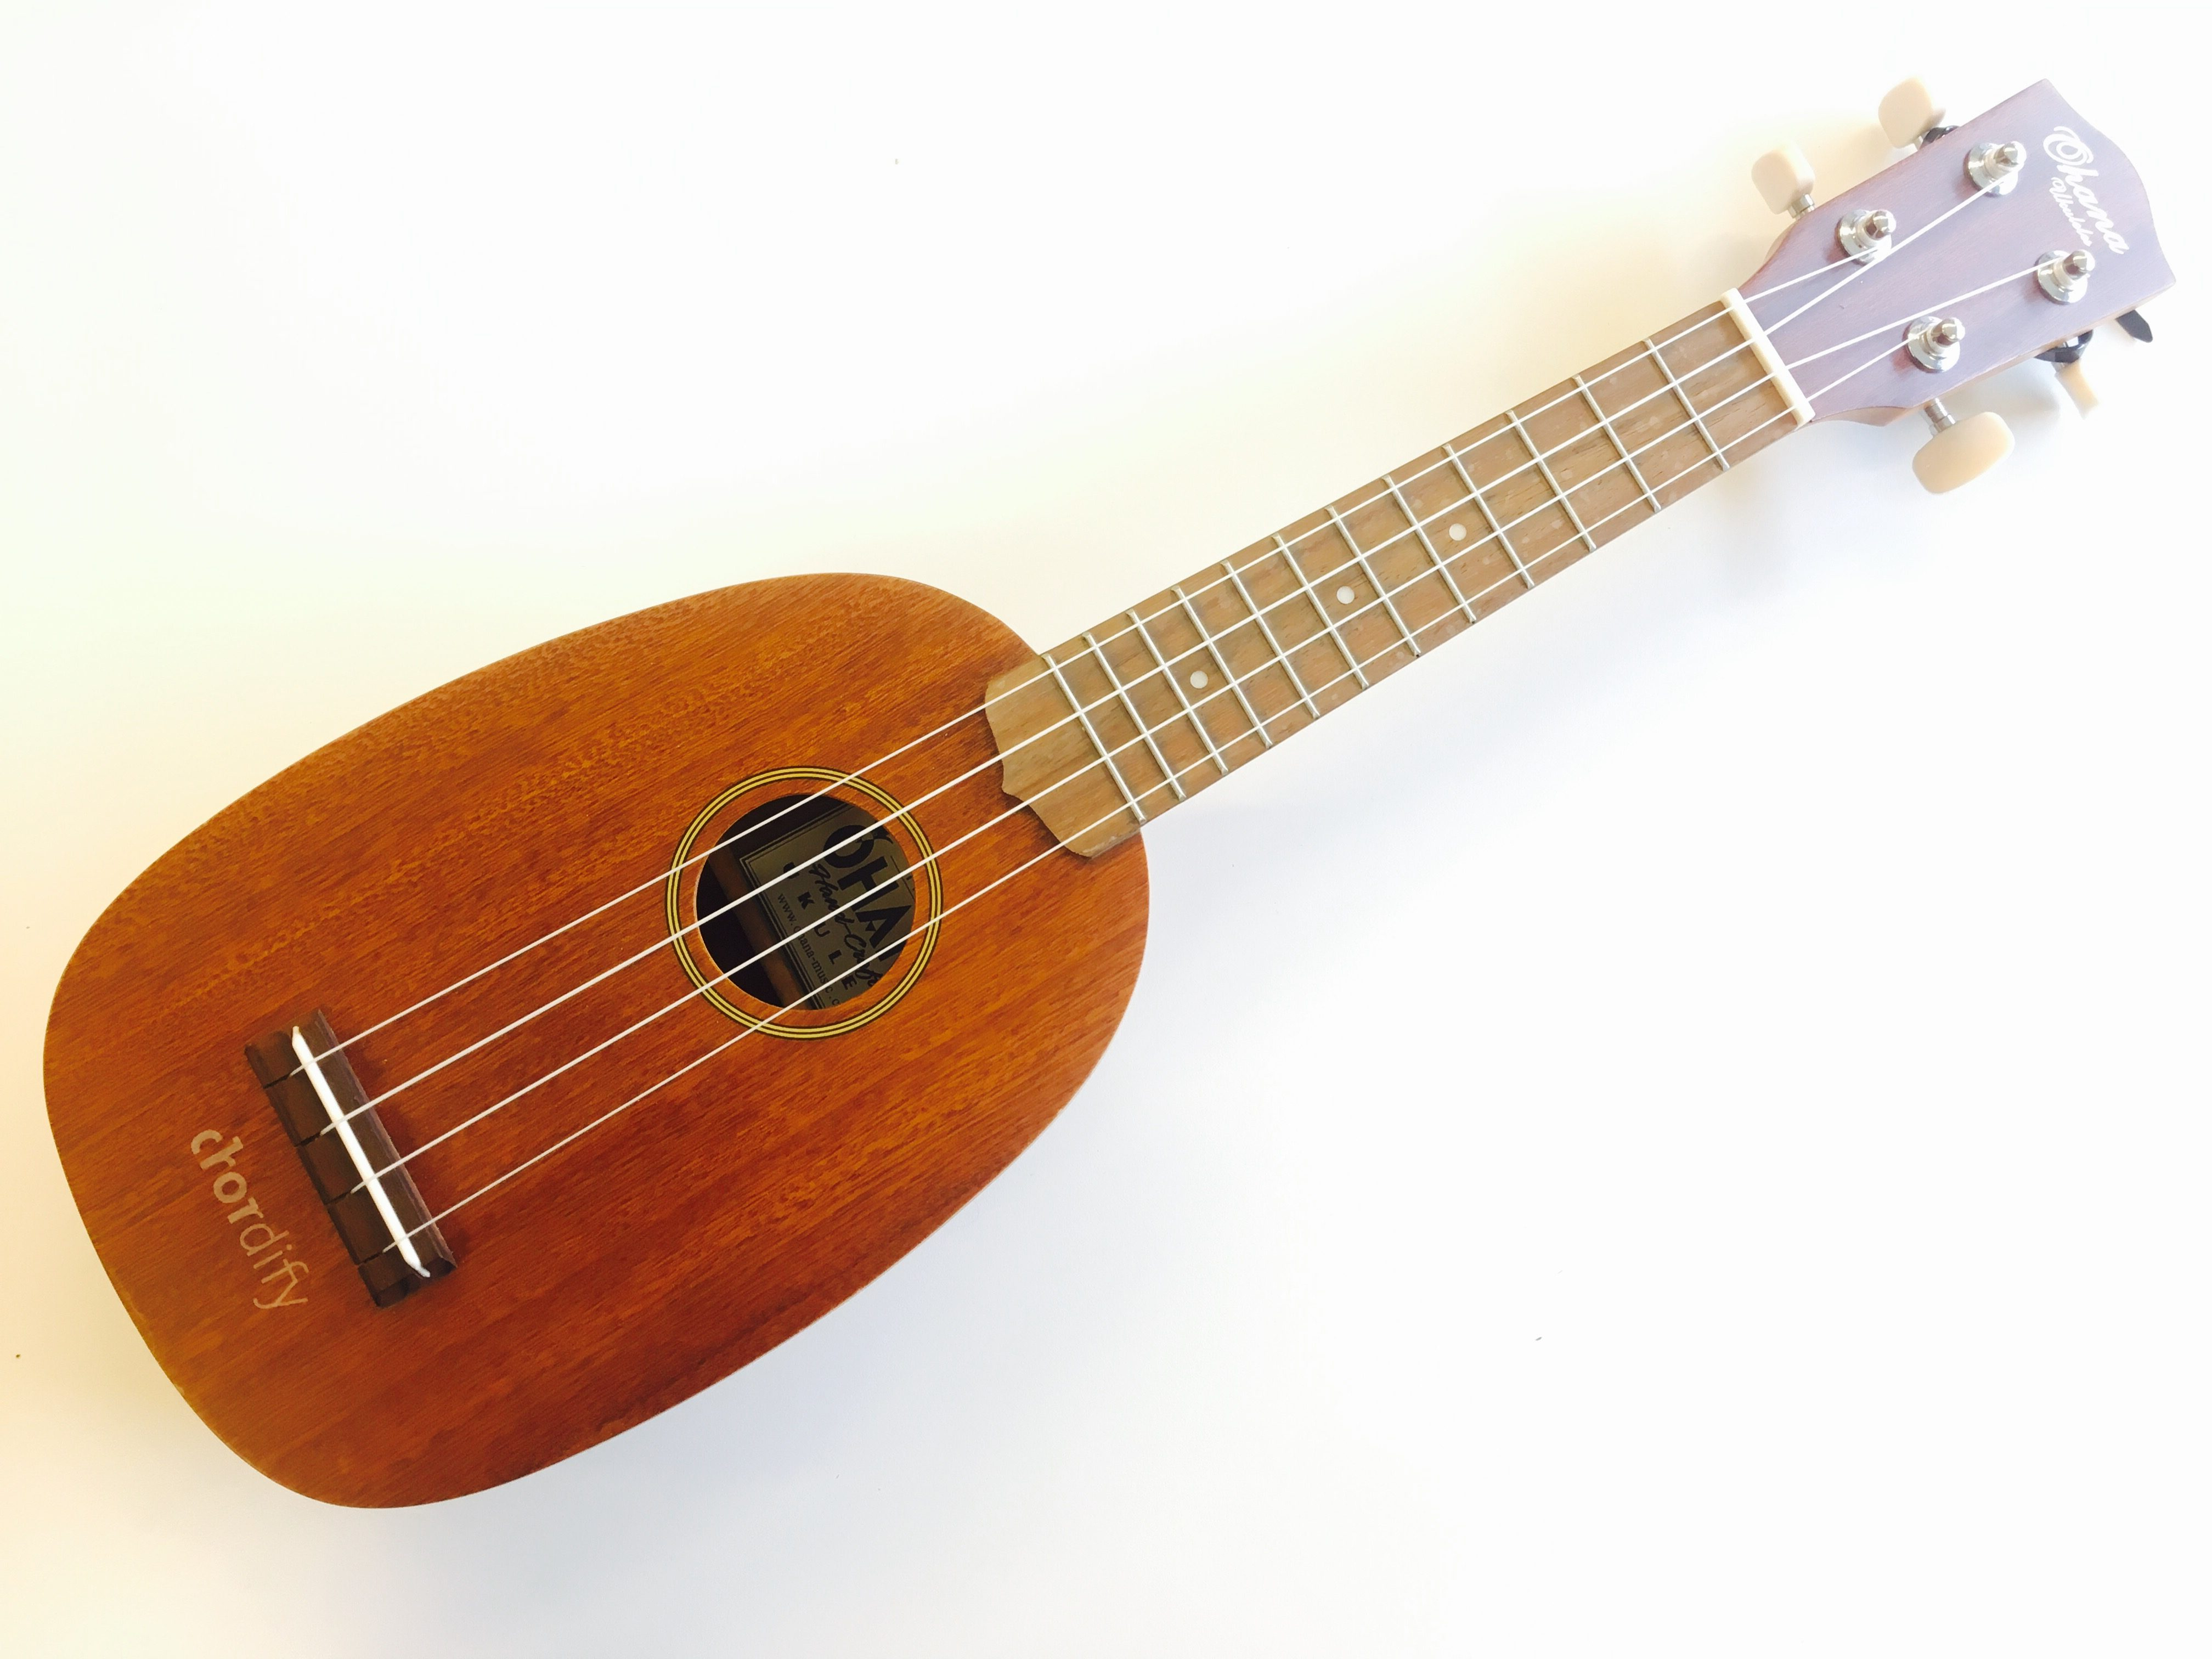 5 Essential Ukulele Accessories The Fun And The Functional